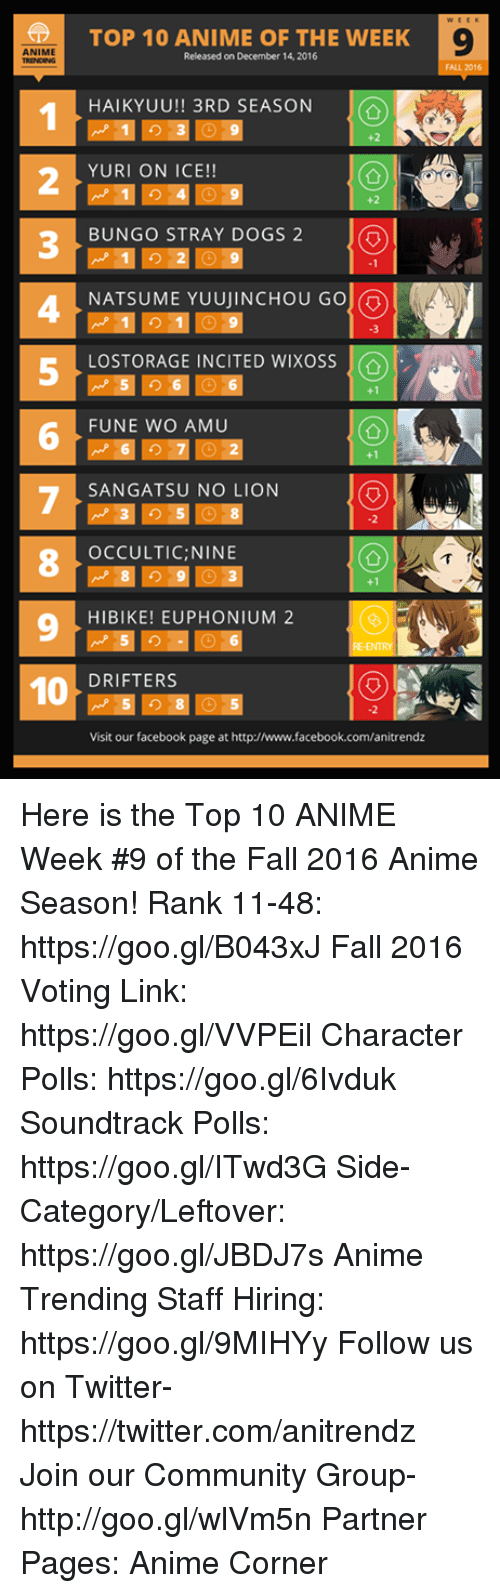 Community, Memes, and Lion: ANIME  10  TOP 10 ANIME OF THE WEEK  Released on December 14, 2016  HAIKYUU!! 3RD SEASON  YURI ON ICE!!  BUNGO STRAY DOGS 2  NATSUME YUUJINCHOU GOJO  LOSTORAGE INCITED WIXOSS  FUNE WO AMU  +1  SANGATSU NO LION  OCCULTIC NINE  HIBIKE! EUPHONIUM 2  DRIFTERS  Visit our facebook page at http://www.facebook.com/anitrendz Here is the Top 10 ANIME Week #9 of the Fall 2016 Anime Season!  Rank 11-48: https://goo.gl/B043xJ  Fall 2016 Voting Link: https://goo.gl/VVPEil Character Polls: https://goo.gl/6Ivduk Soundtrack Polls: https://goo.gl/ITwd3G Side-Category/Leftover: https://goo.gl/JBDJ7s  Anime Trending Staff Hiring: https://goo.gl/9MIHYy  Follow us on Twitter- https://twitter.com/anitrendz Join our Community Group- http://goo.gl/wlVm5n  Partner Pages: Anime Corner